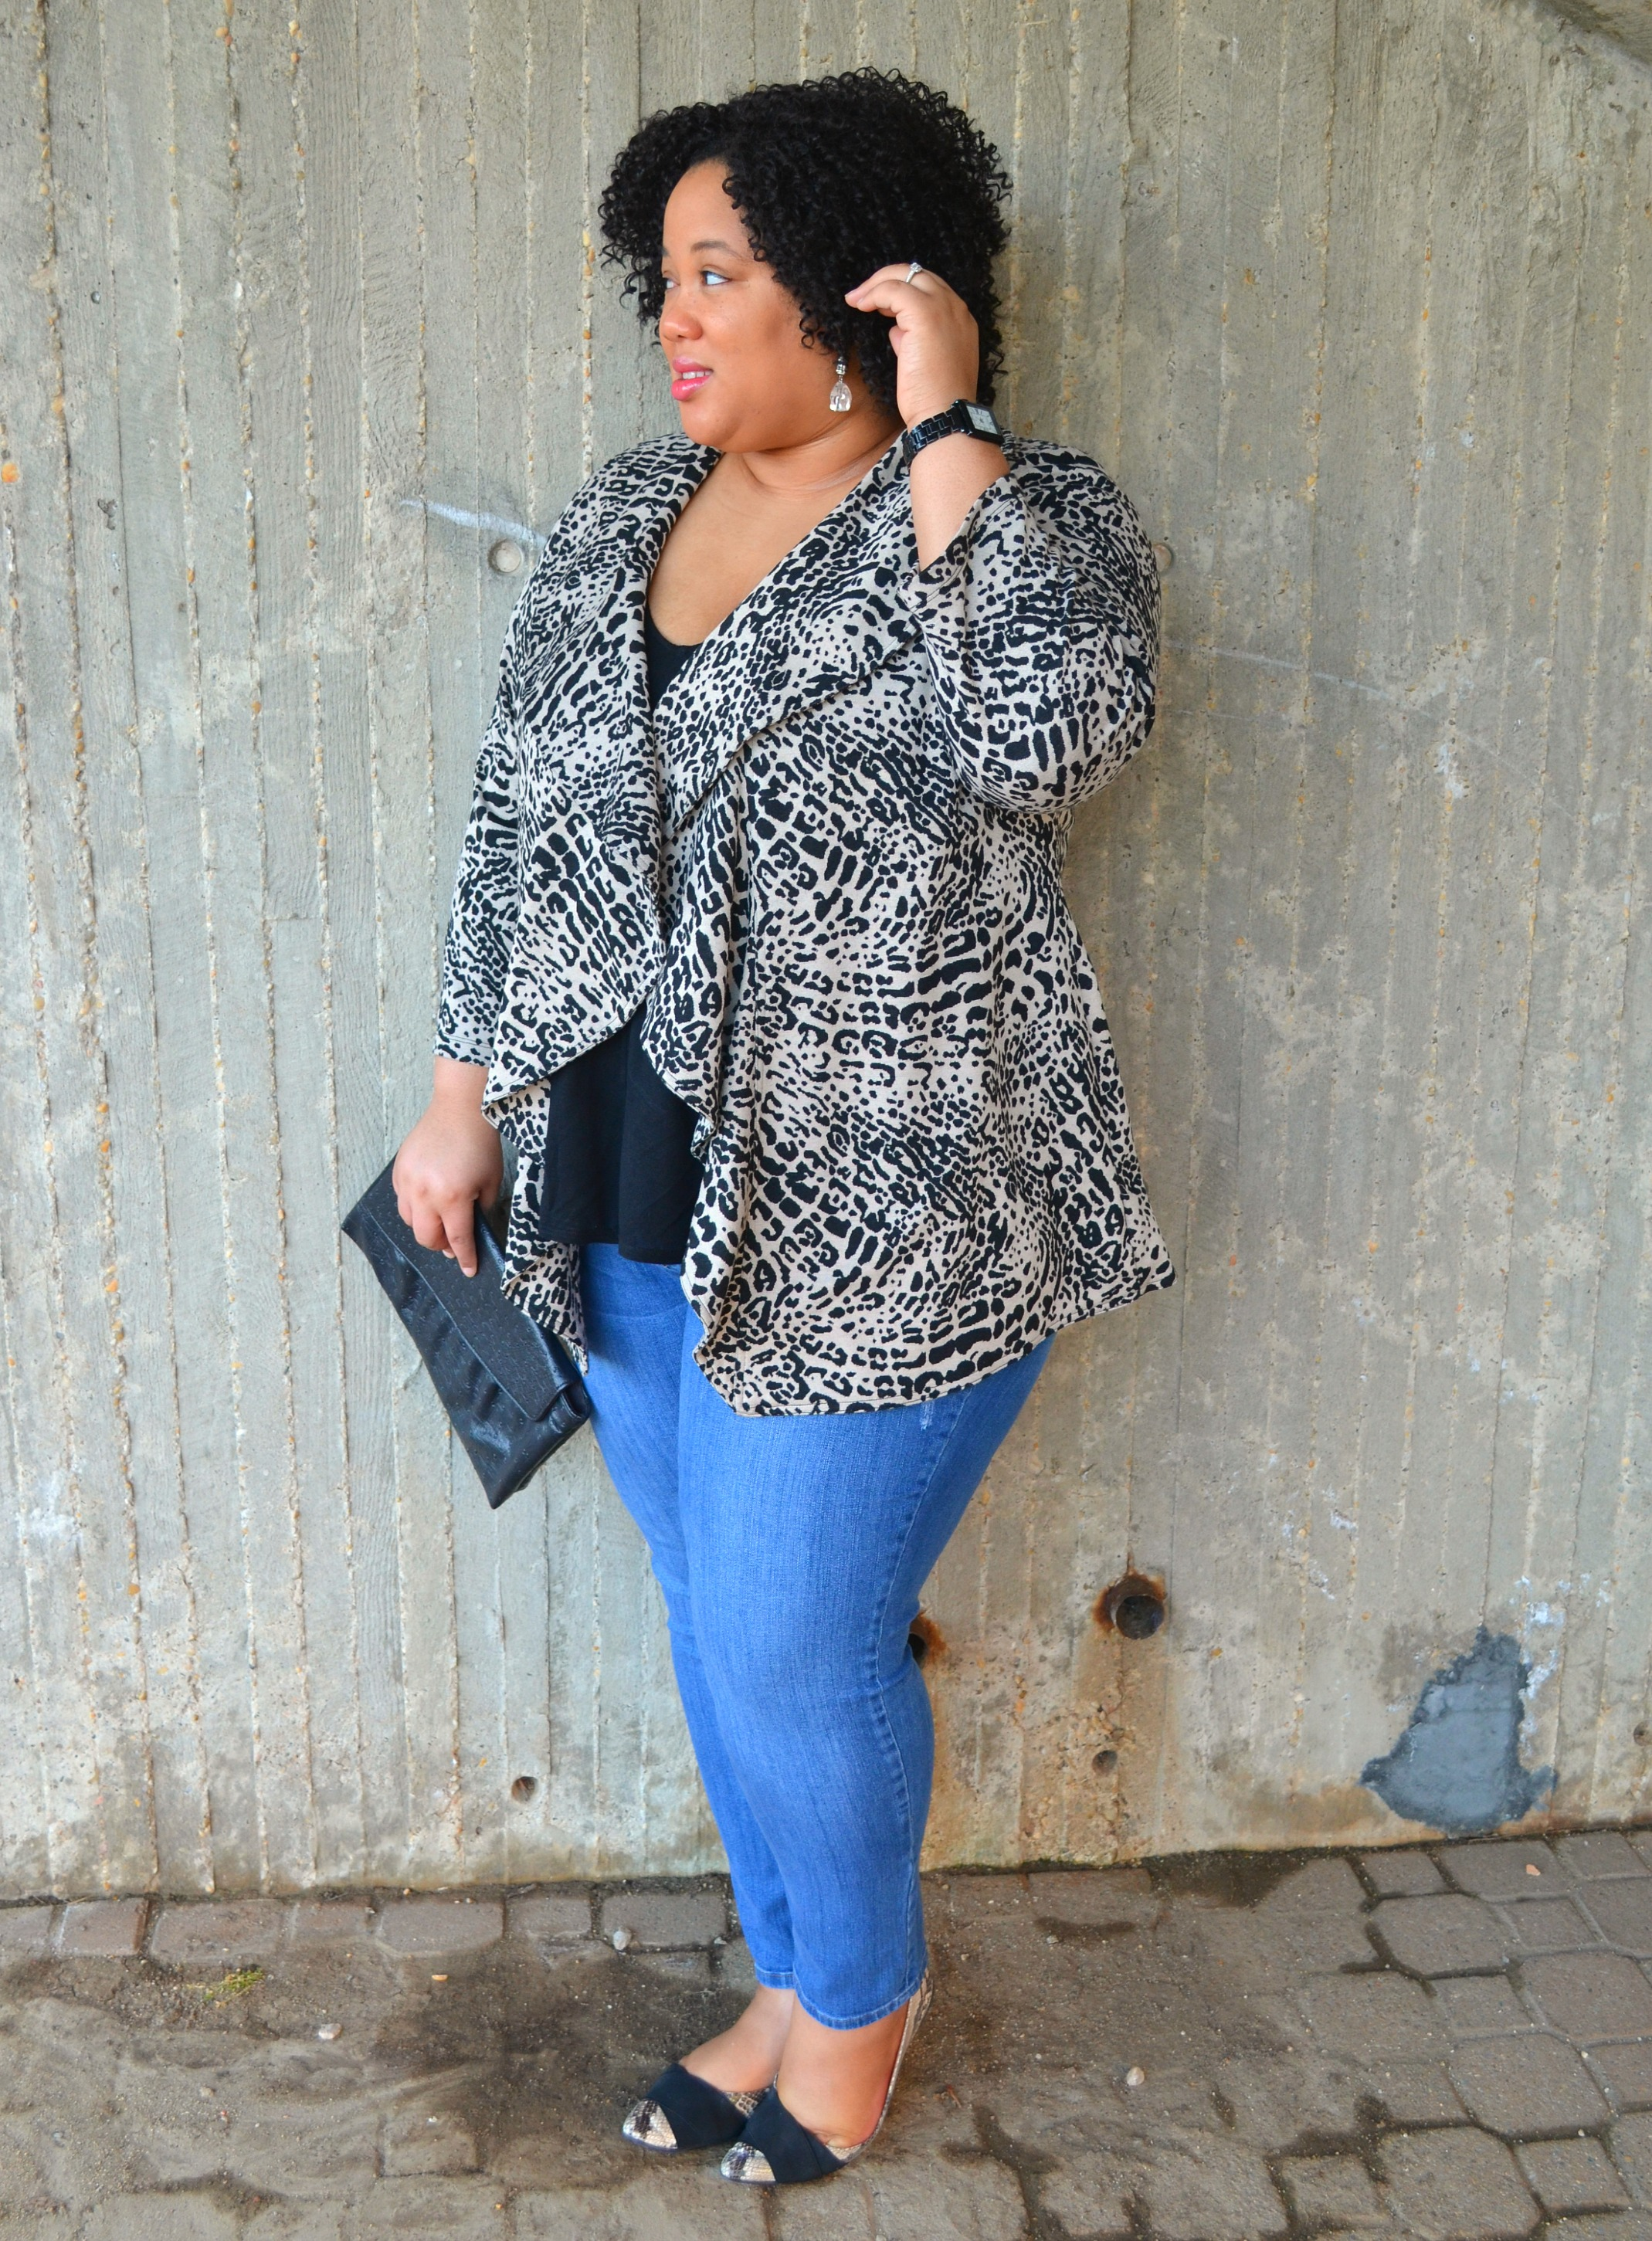 OOTD - Denim and Animal Print